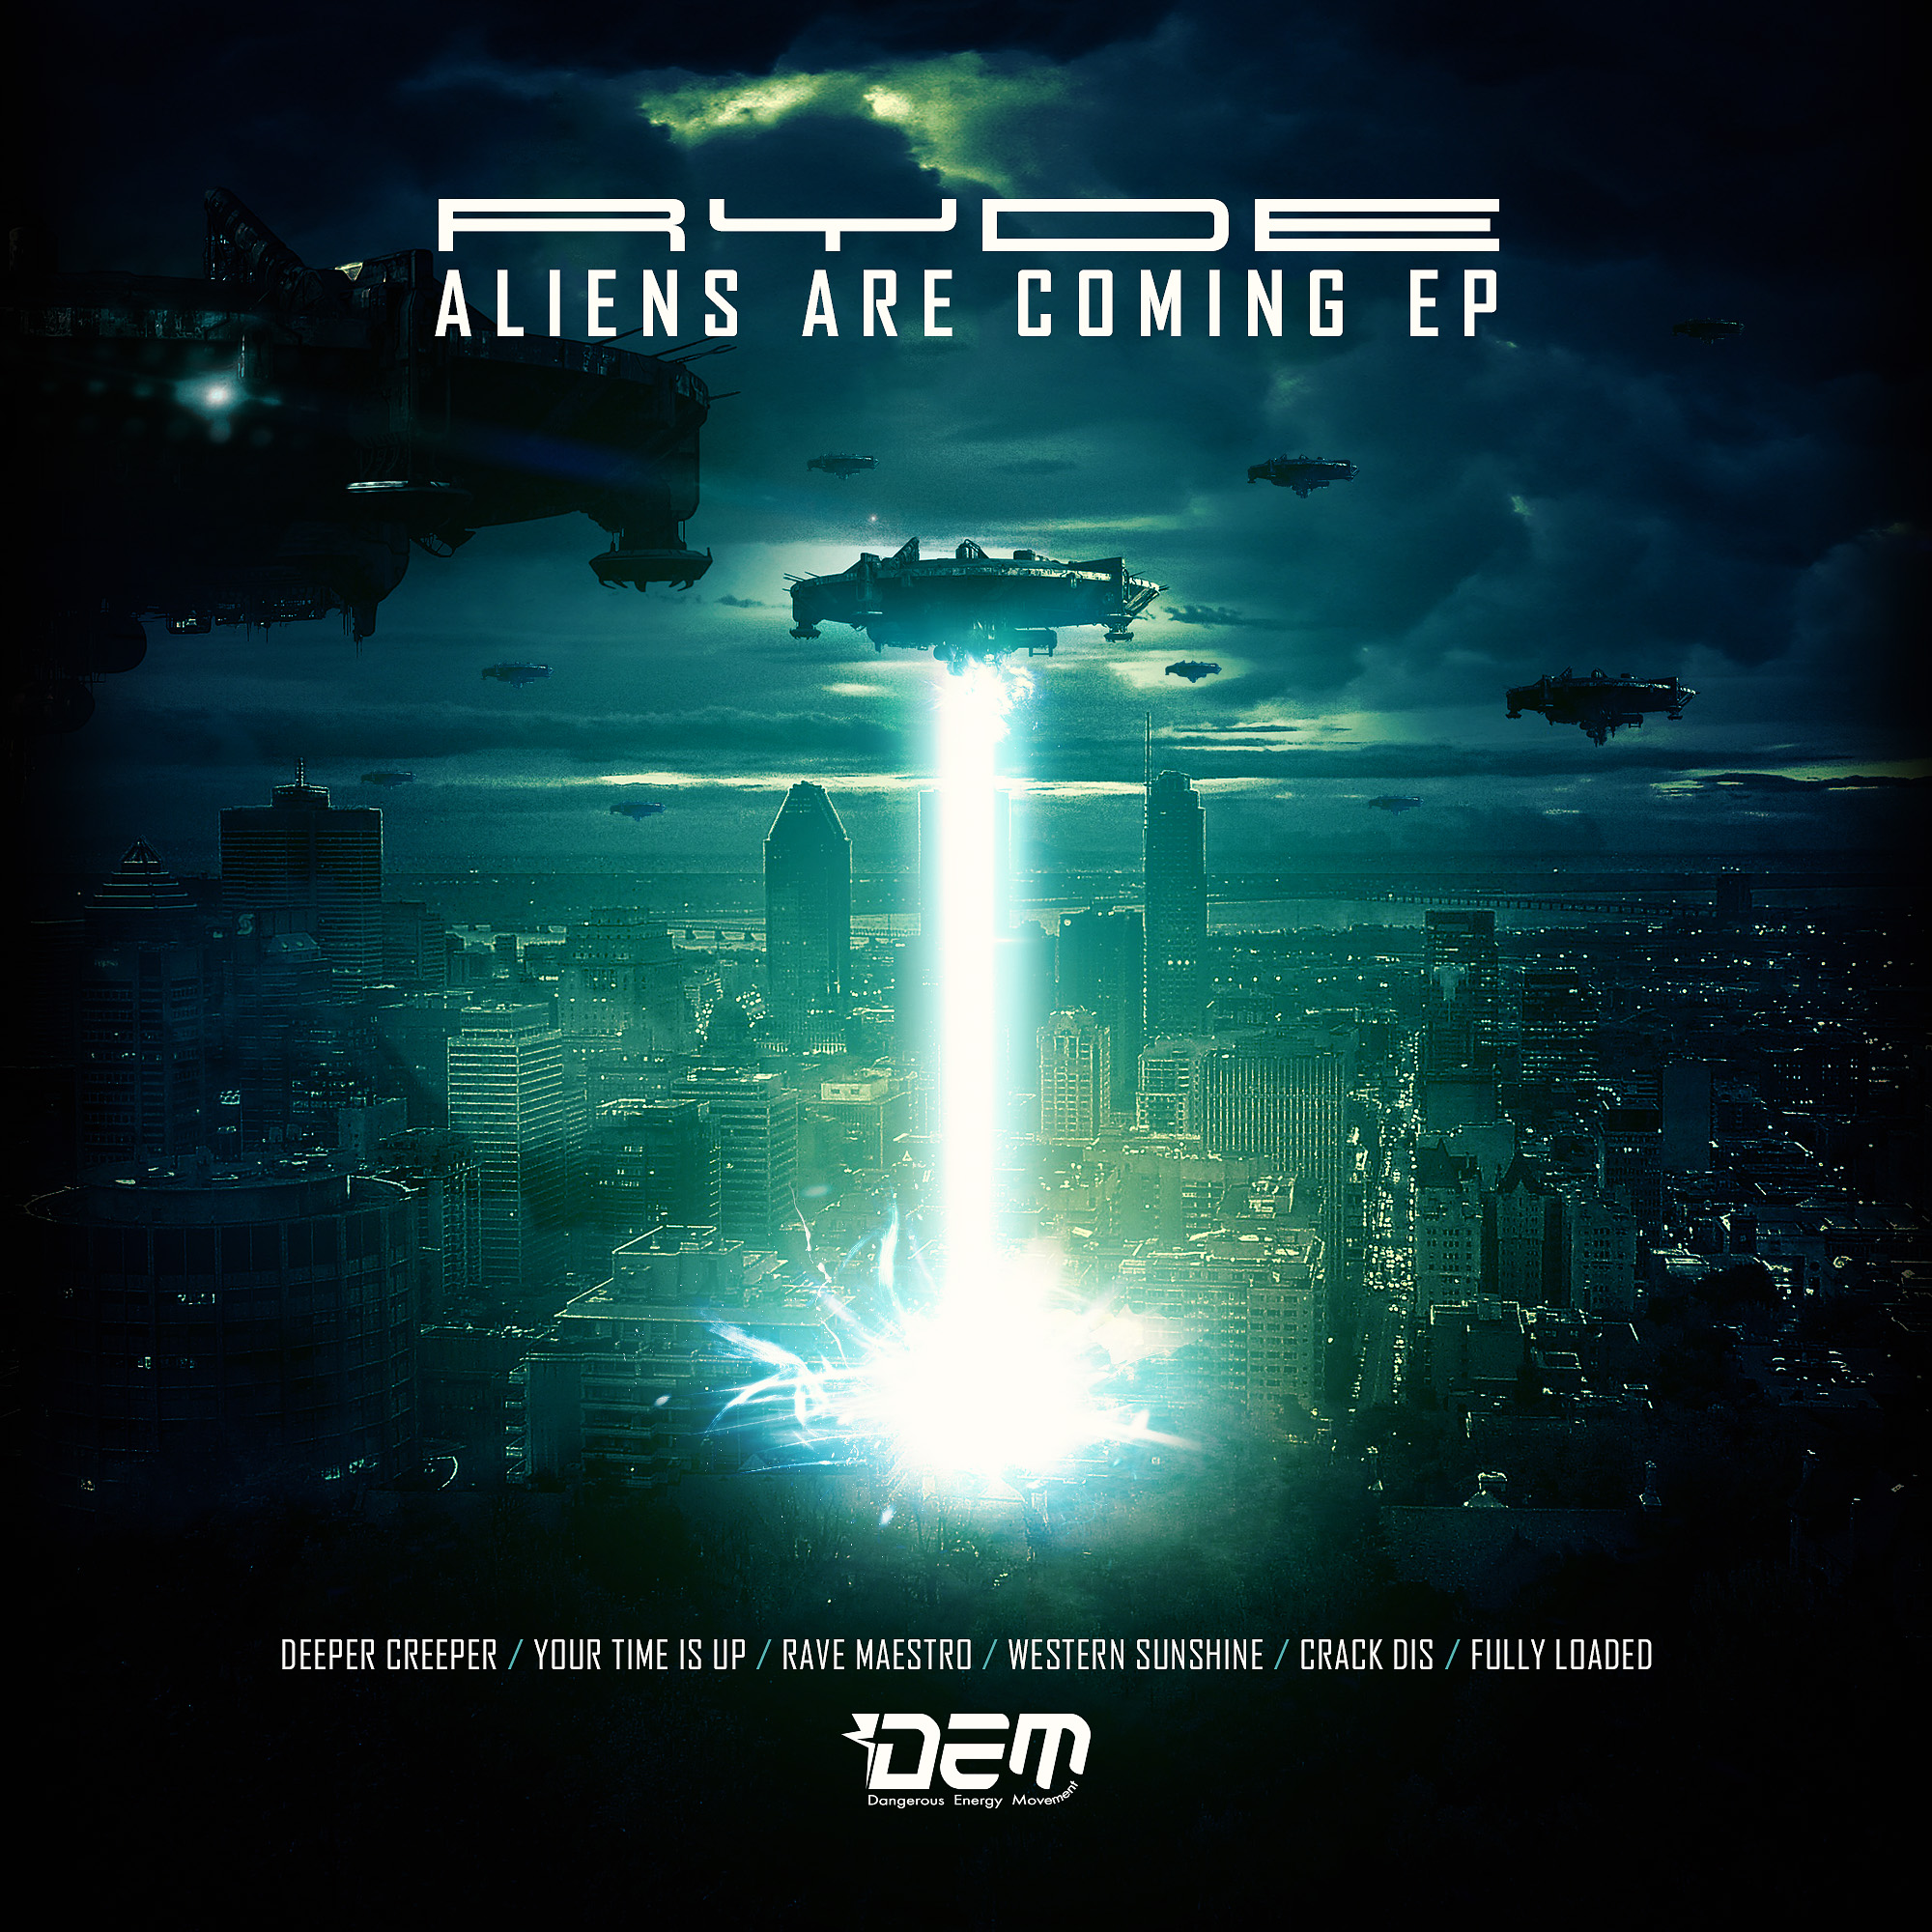 Aliens are coming new music videos this week